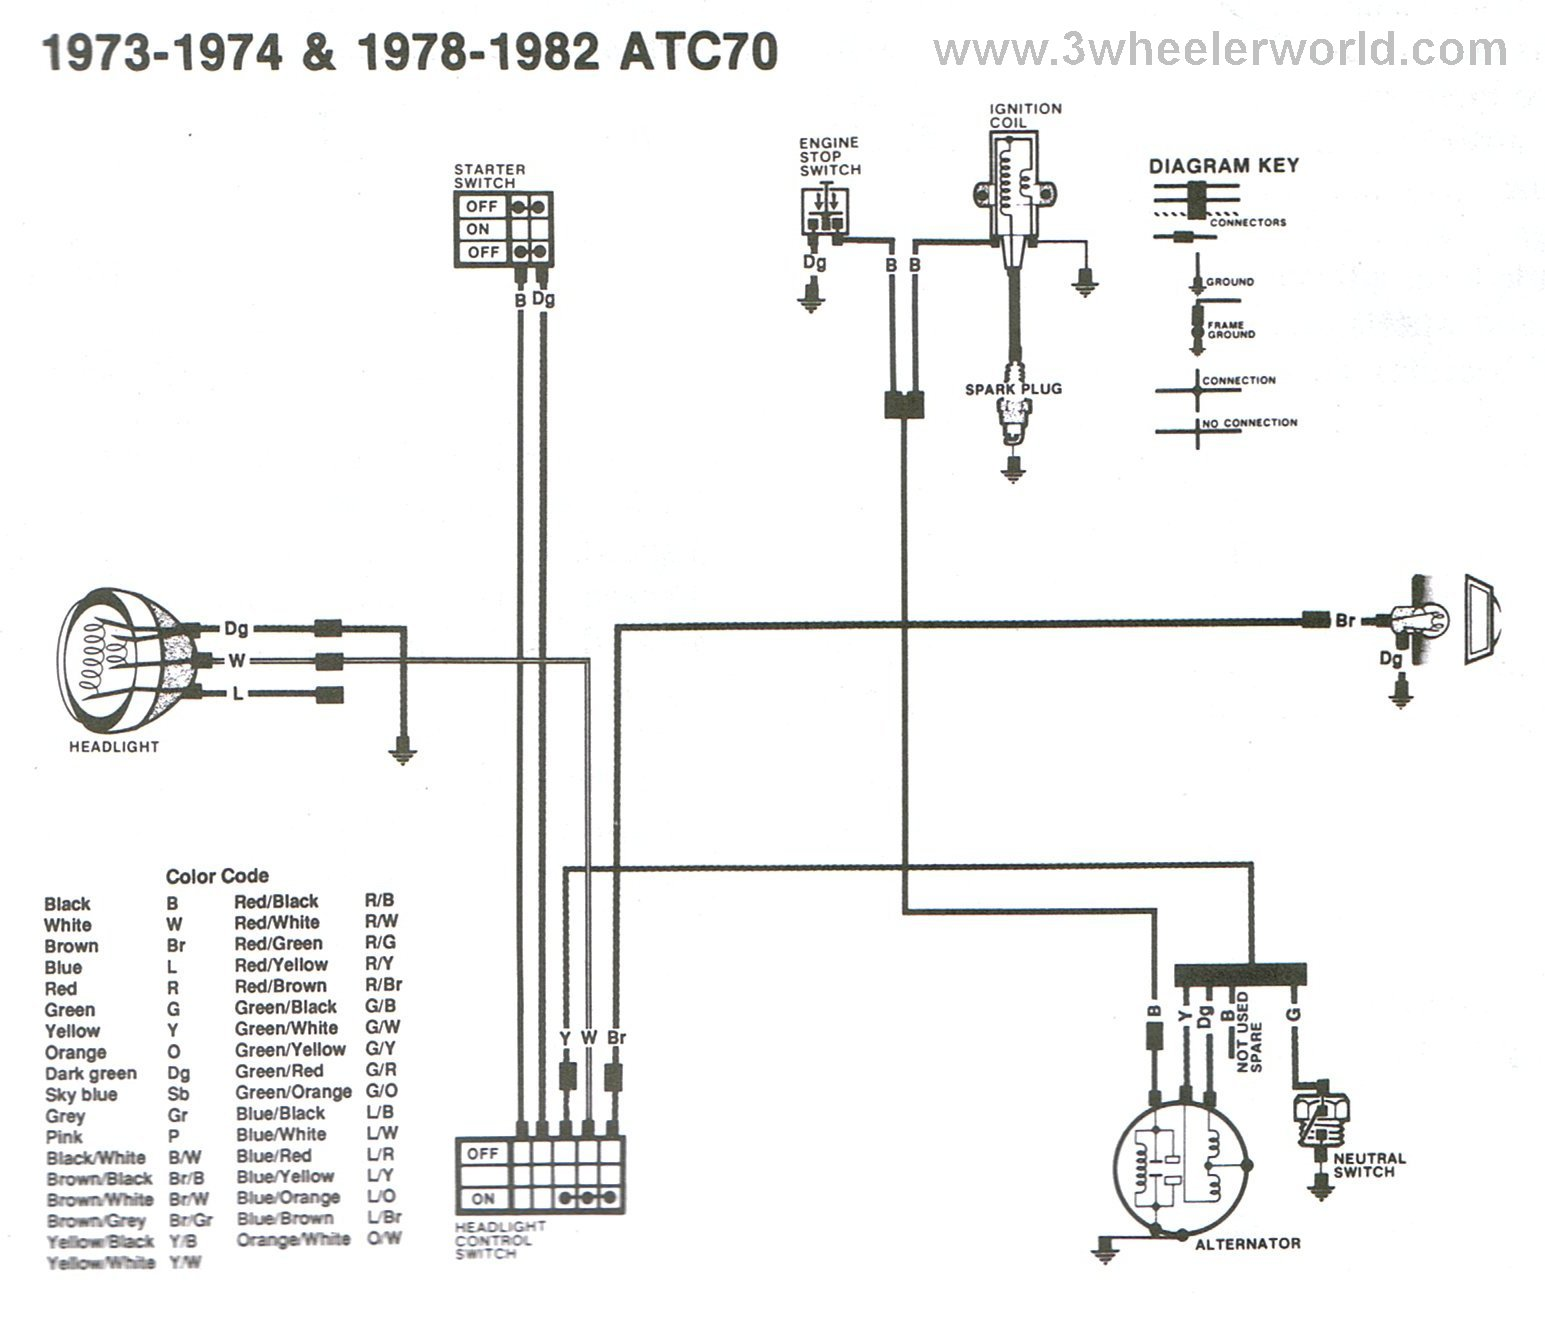 ATC70x73Thru82 3 wheeler world tech help honda wiring diagrams wiring diagram for 1987 honda 250es at eliteediting.co